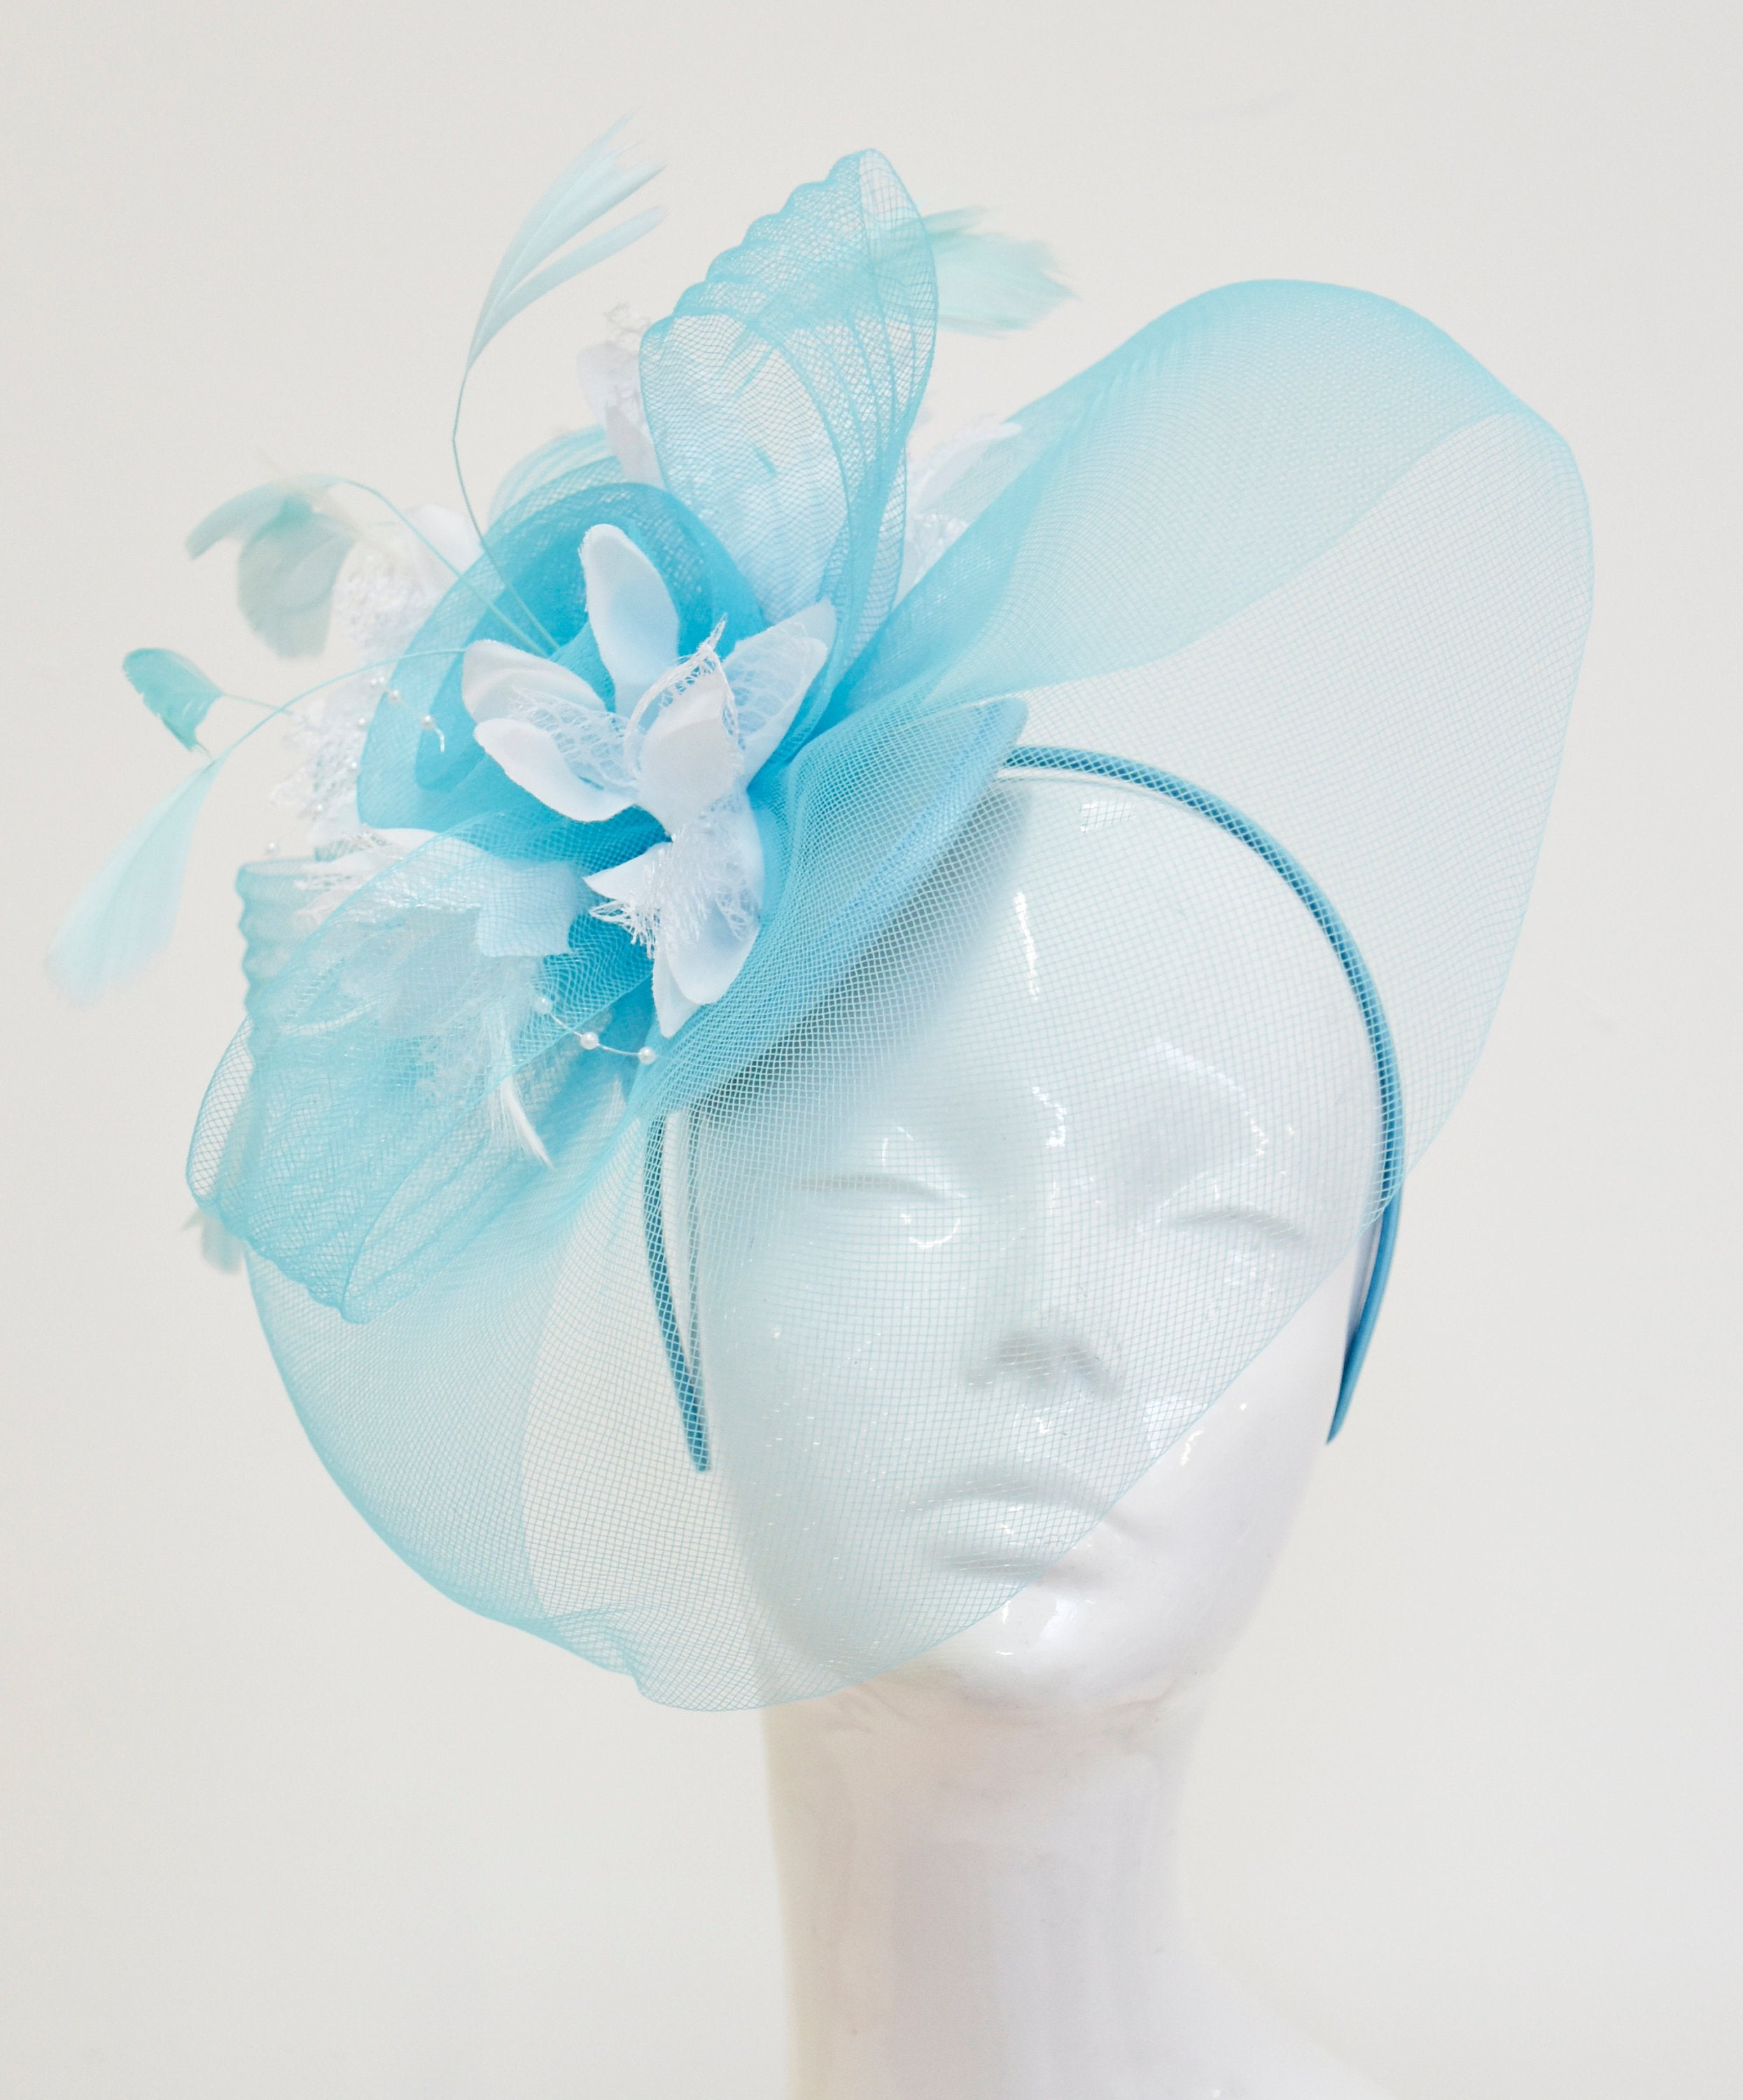 Caprilite Big Light Turquoise Blue and White Fascinator Hat Veil Net Hair Clip Ascot Derby Races Wedding Headband Feather Flower